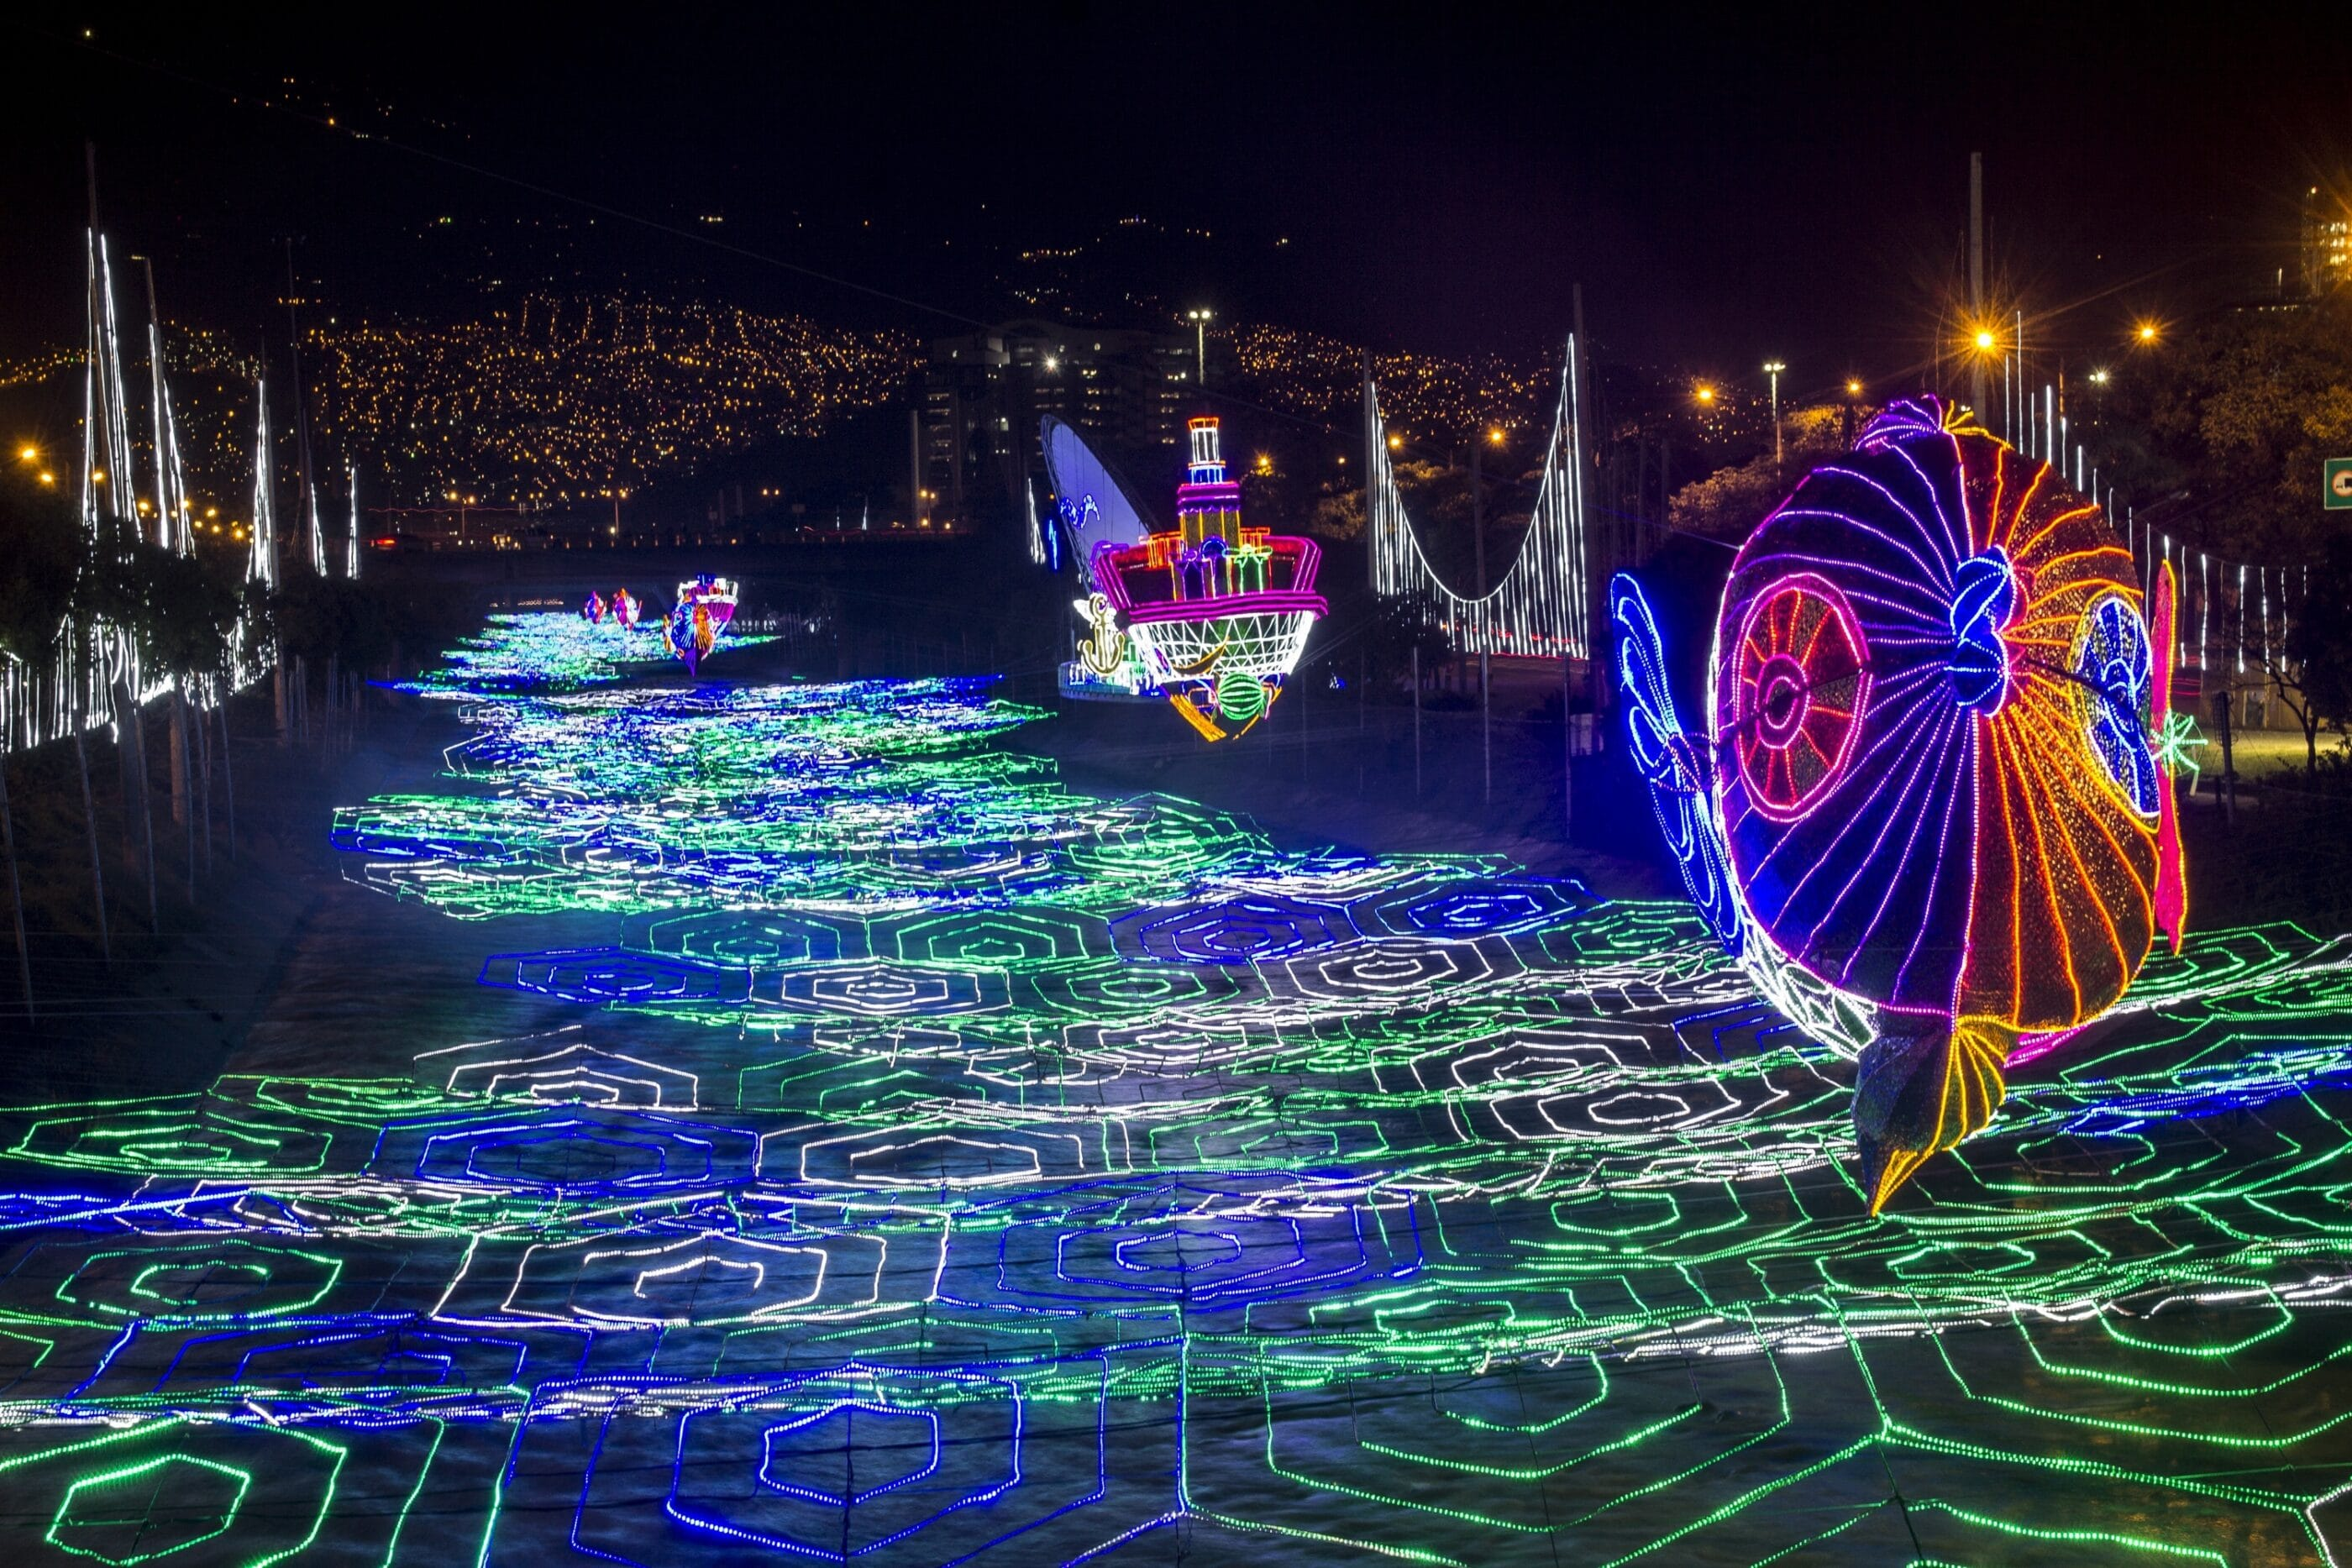 See why Medellin, Colombia is one of the ten best places in the world to see Christmas lights.